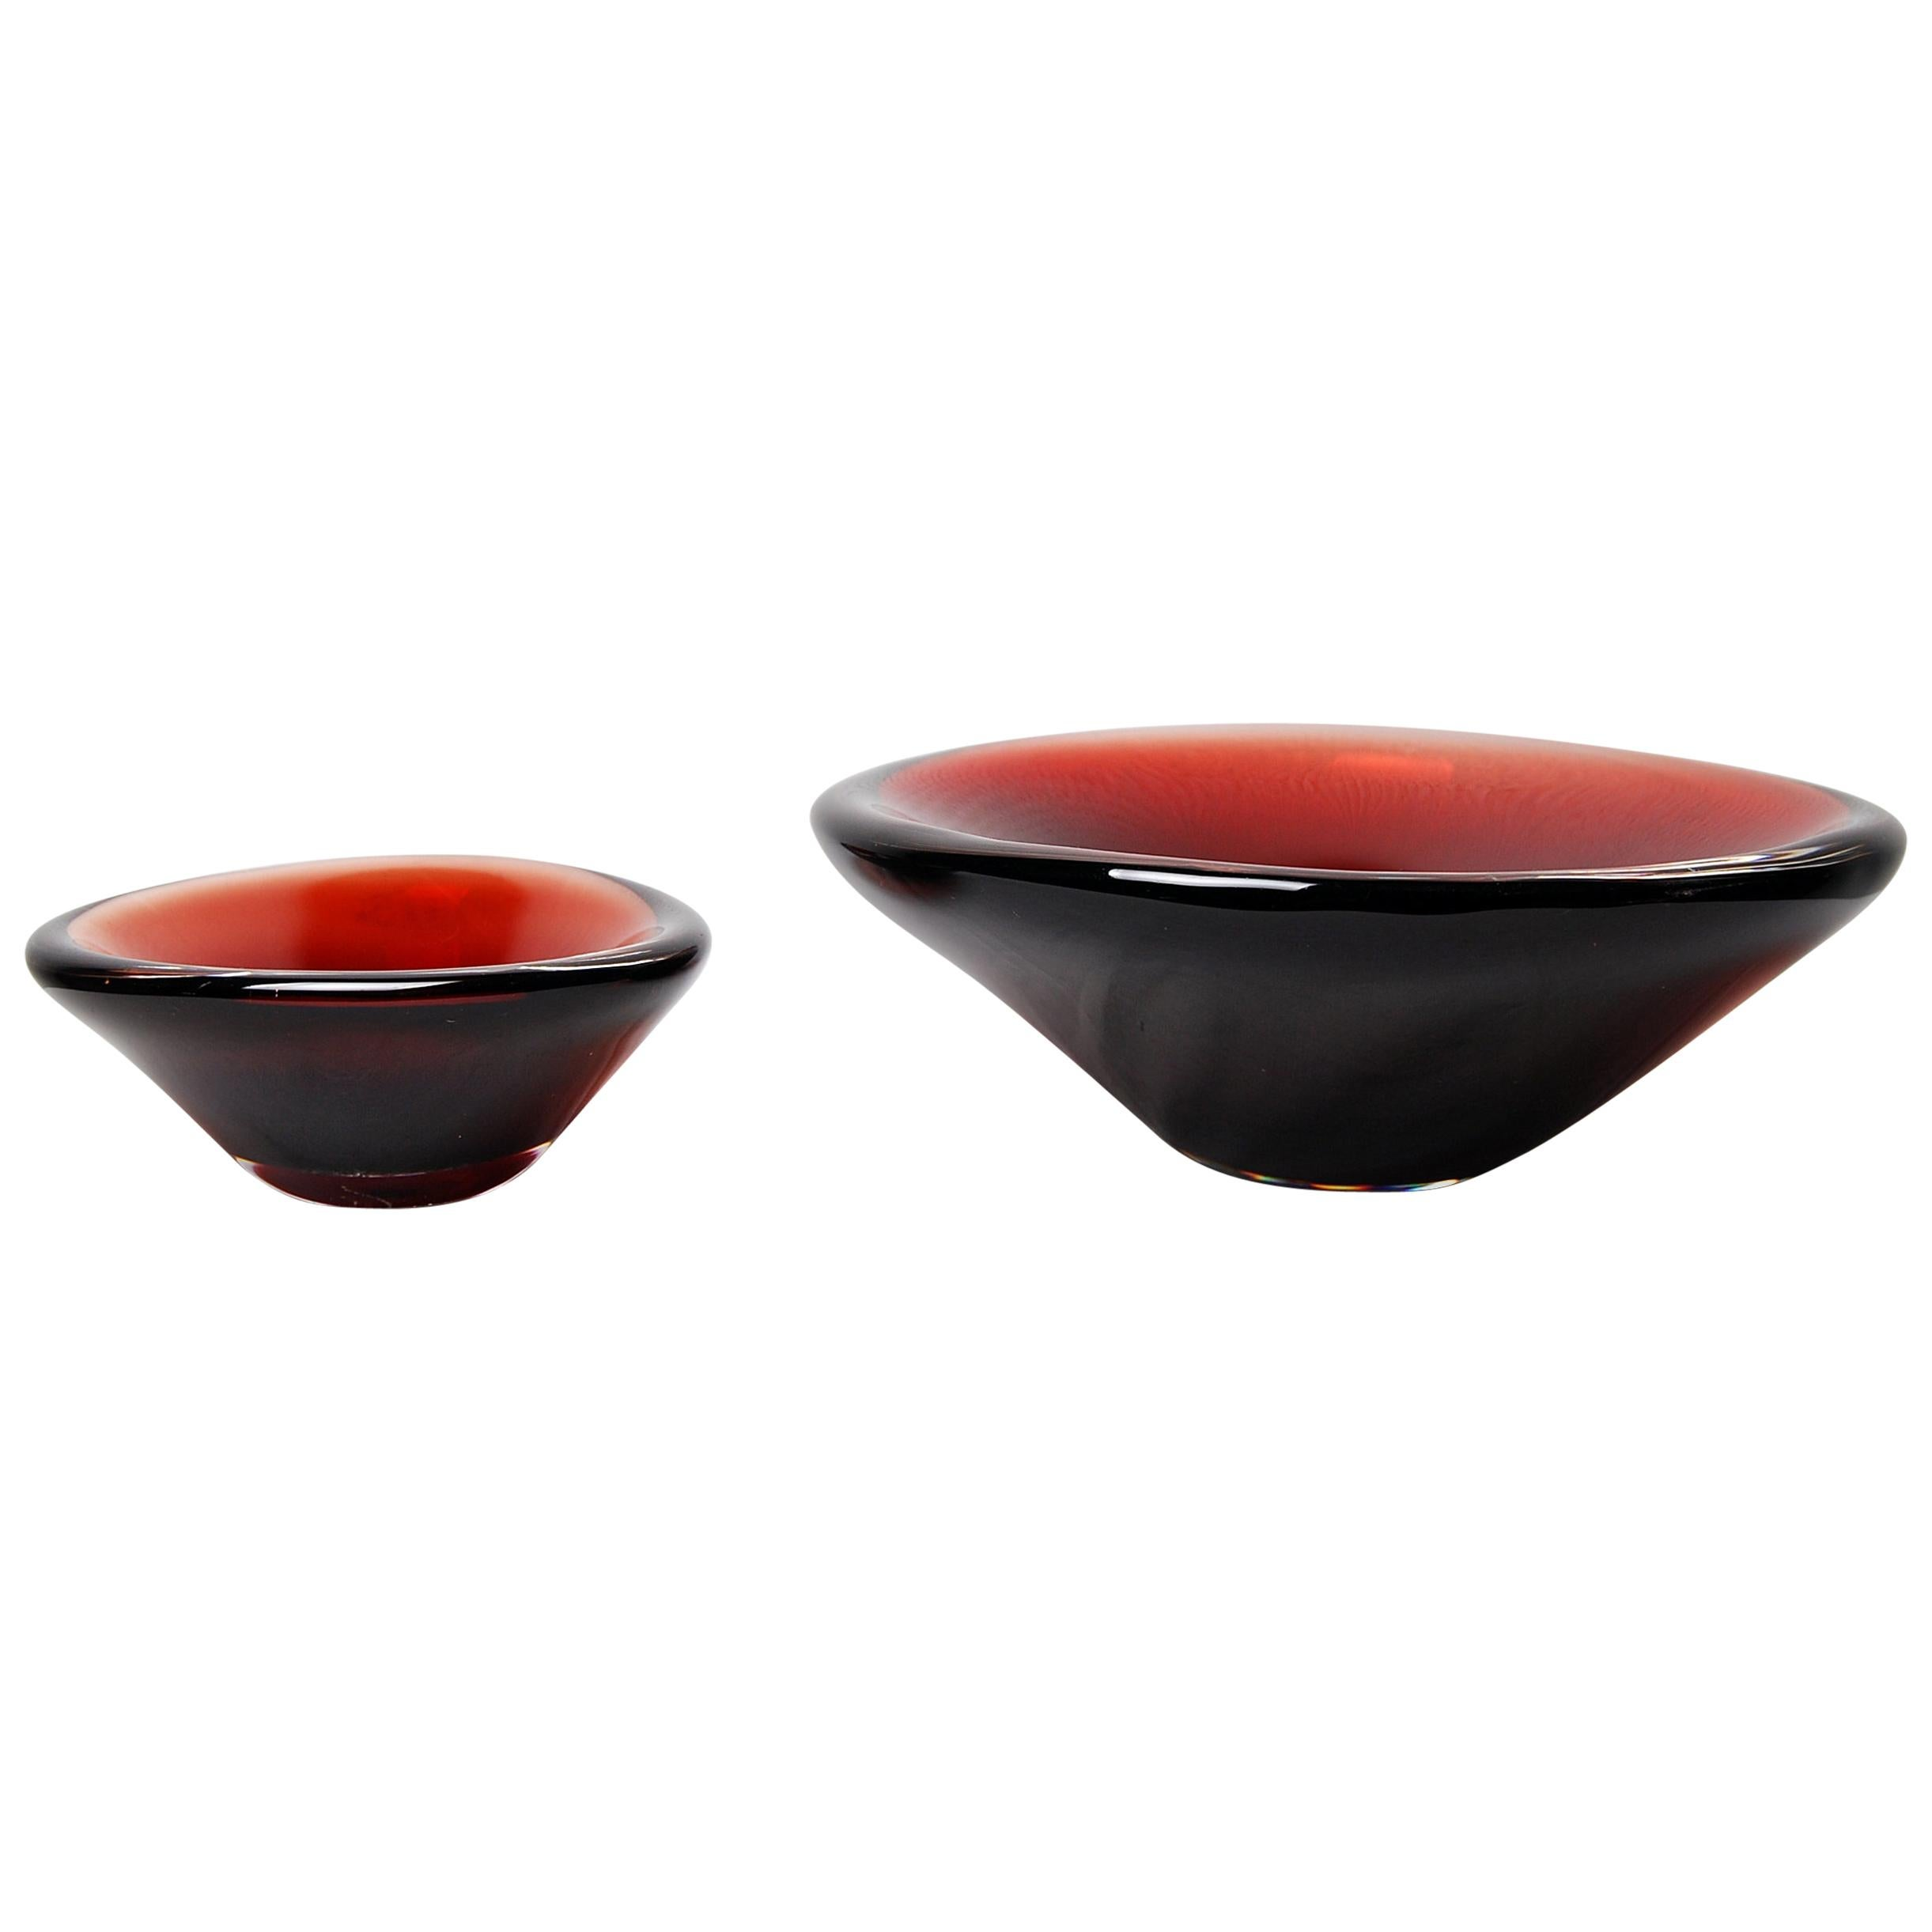 "Set of 2 Orrefors Sven Palmquist ""Selena"" Glass Bowls Scandinavian Modern"